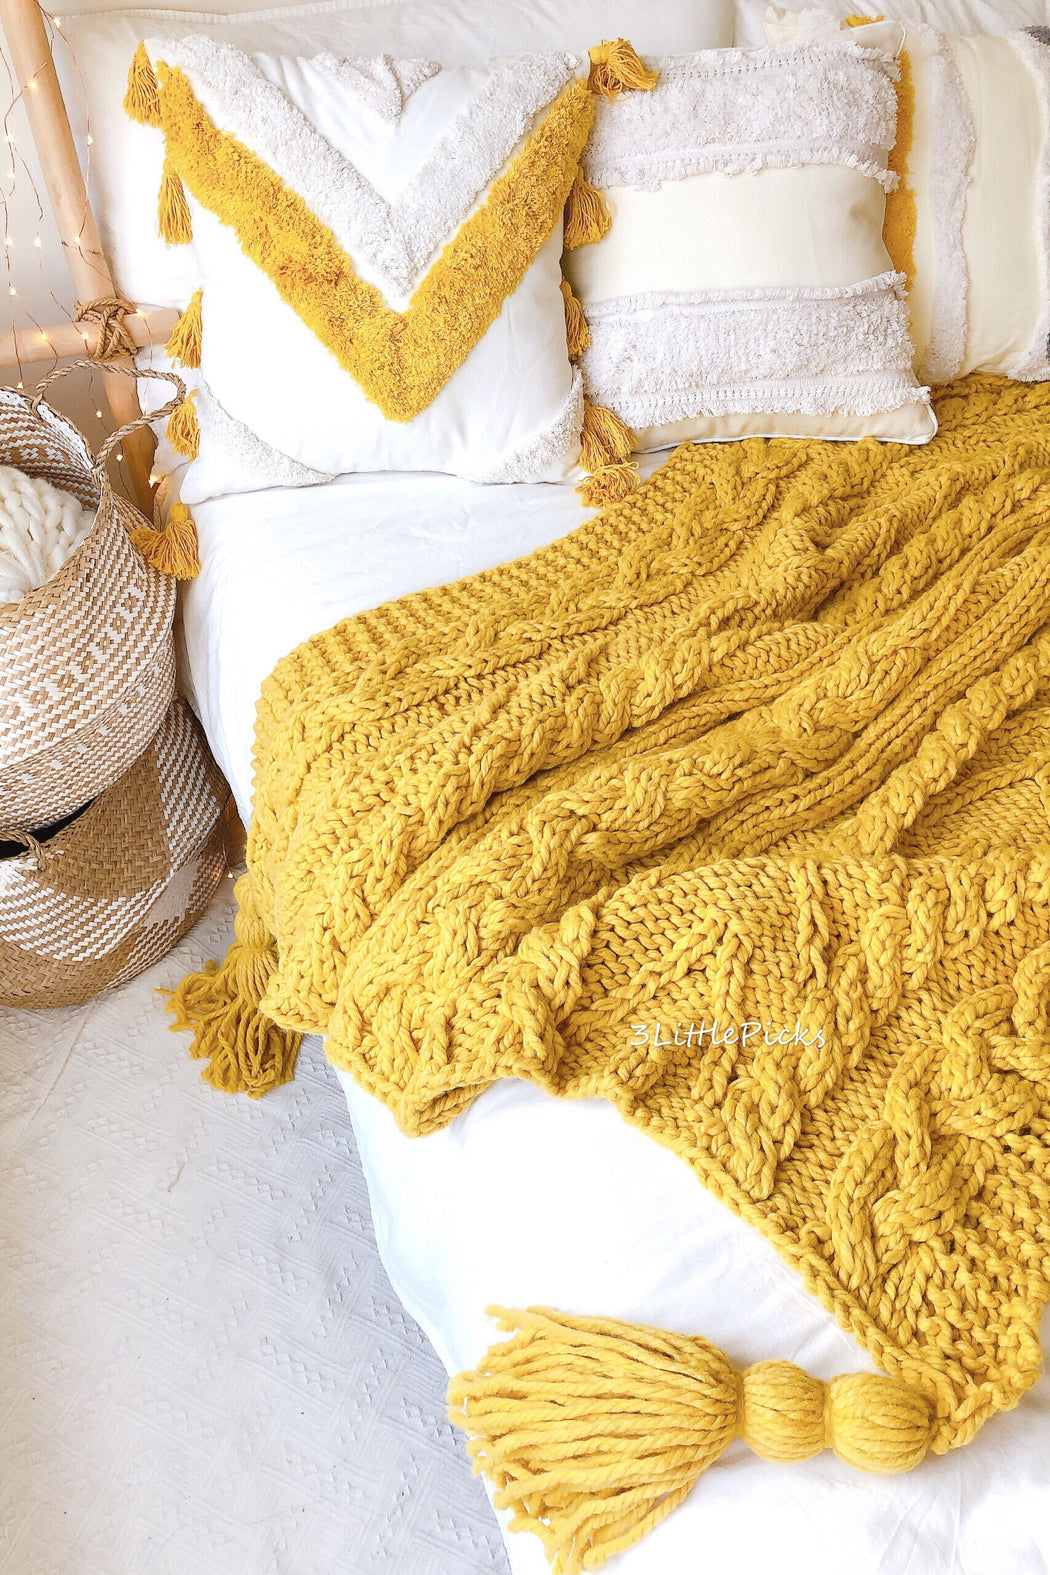 COMING BACK: Mustard Yellow Chunky Knitted Throw, Textile, 3LittlePicks - 3LittlePicks